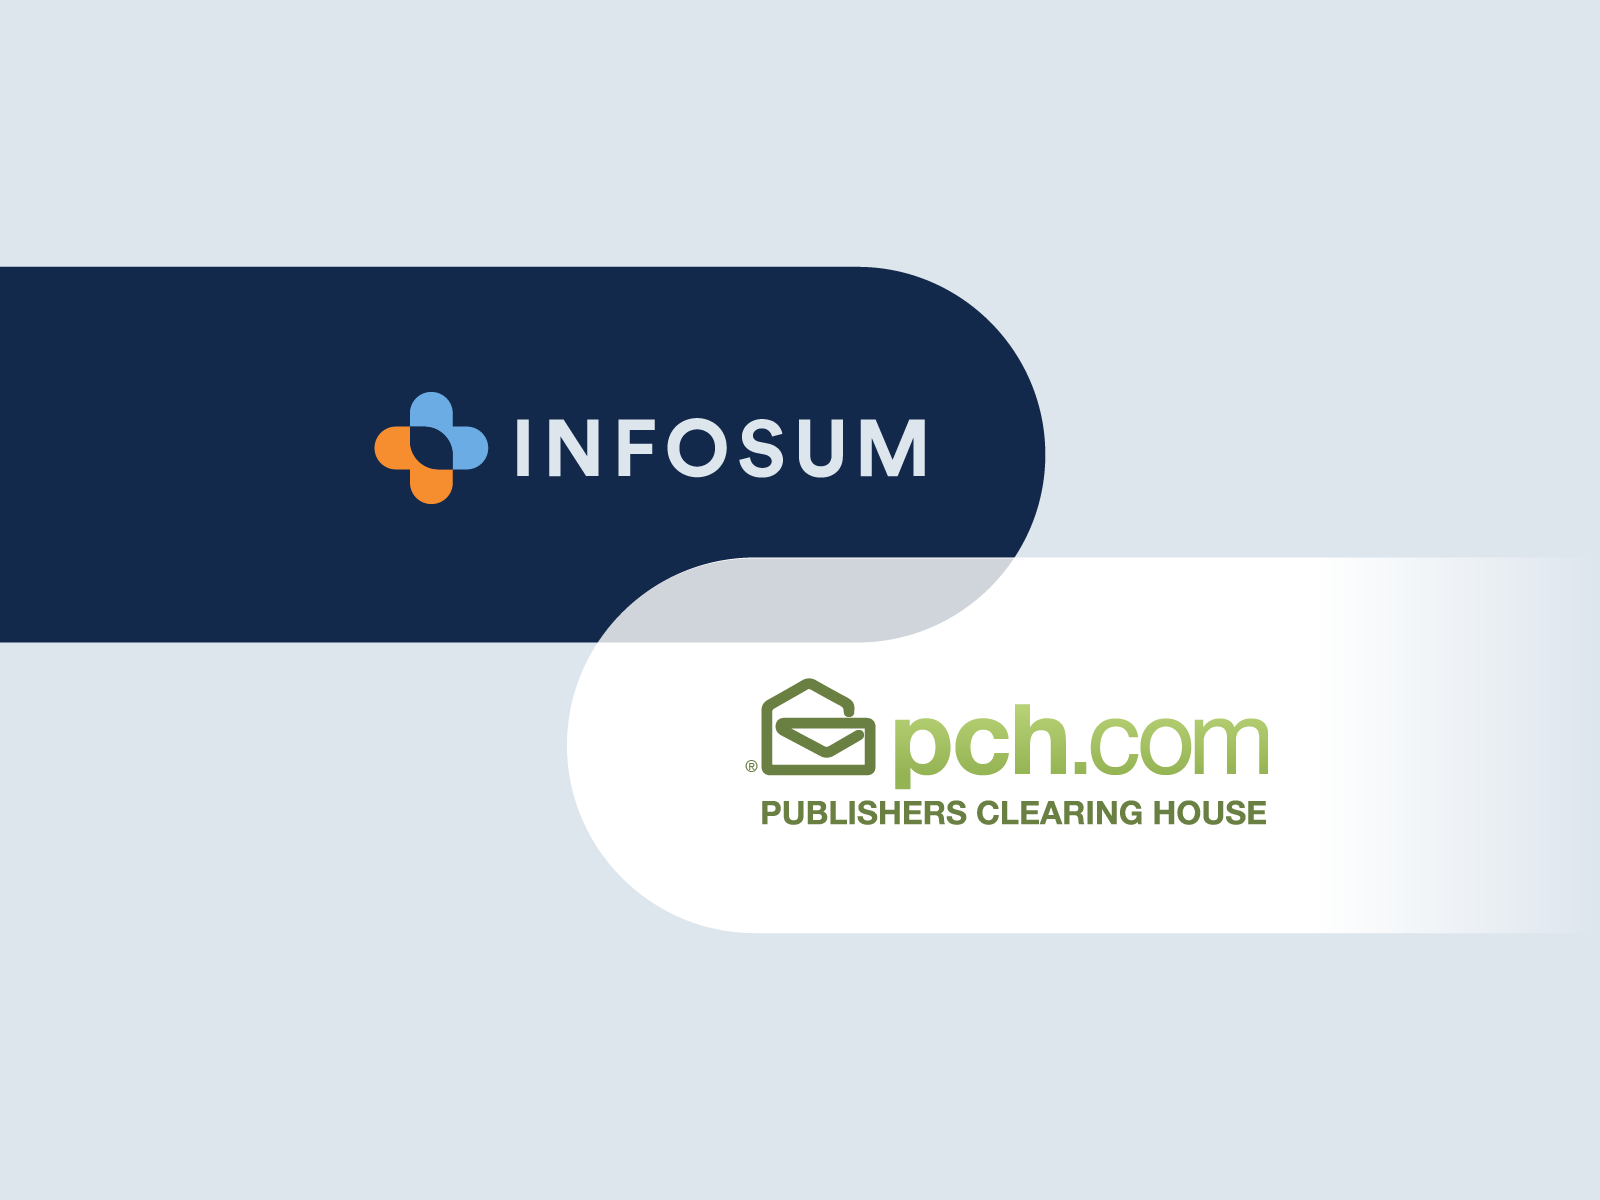 Publishers Clearing House expands first-party data capabilities with InfoSum